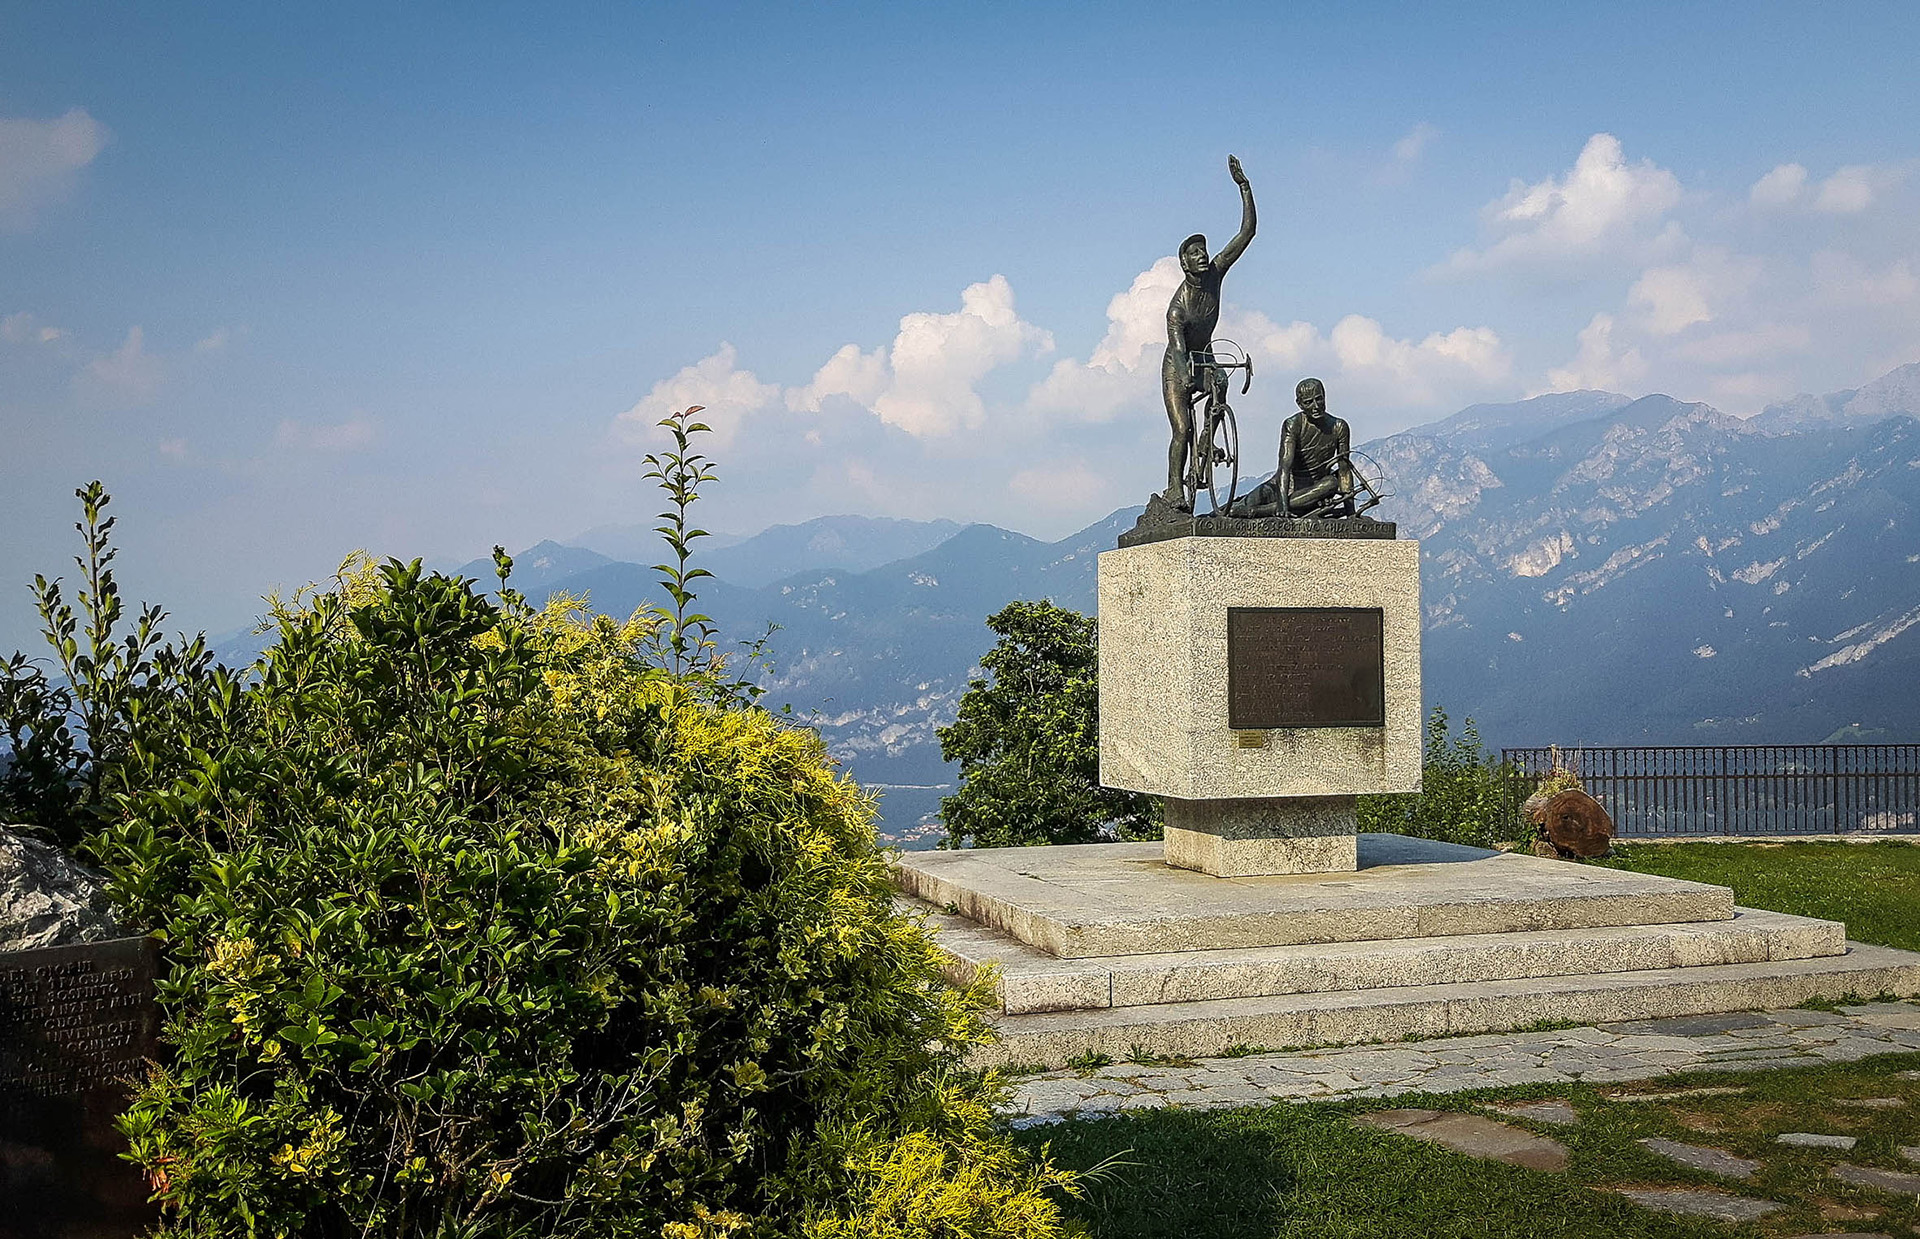 The monument to cycling at the summit of the Passo del Ghisallo, providing stunning views and an opportunity to consider the highs (victory) and lows (crashing) of cycling; the museum and chapel are close by.